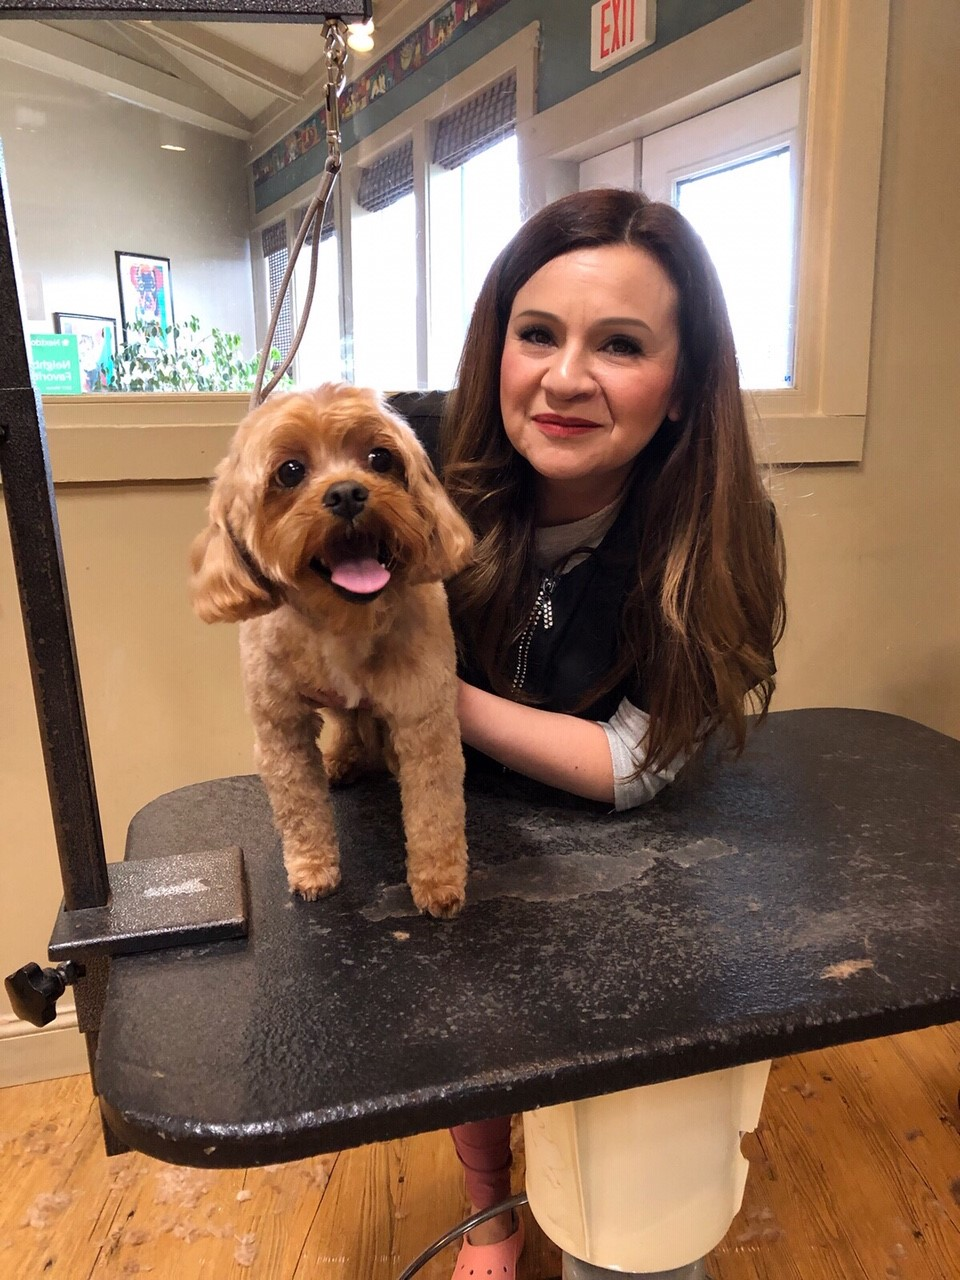 A woman holding a dog on a pet grooming table